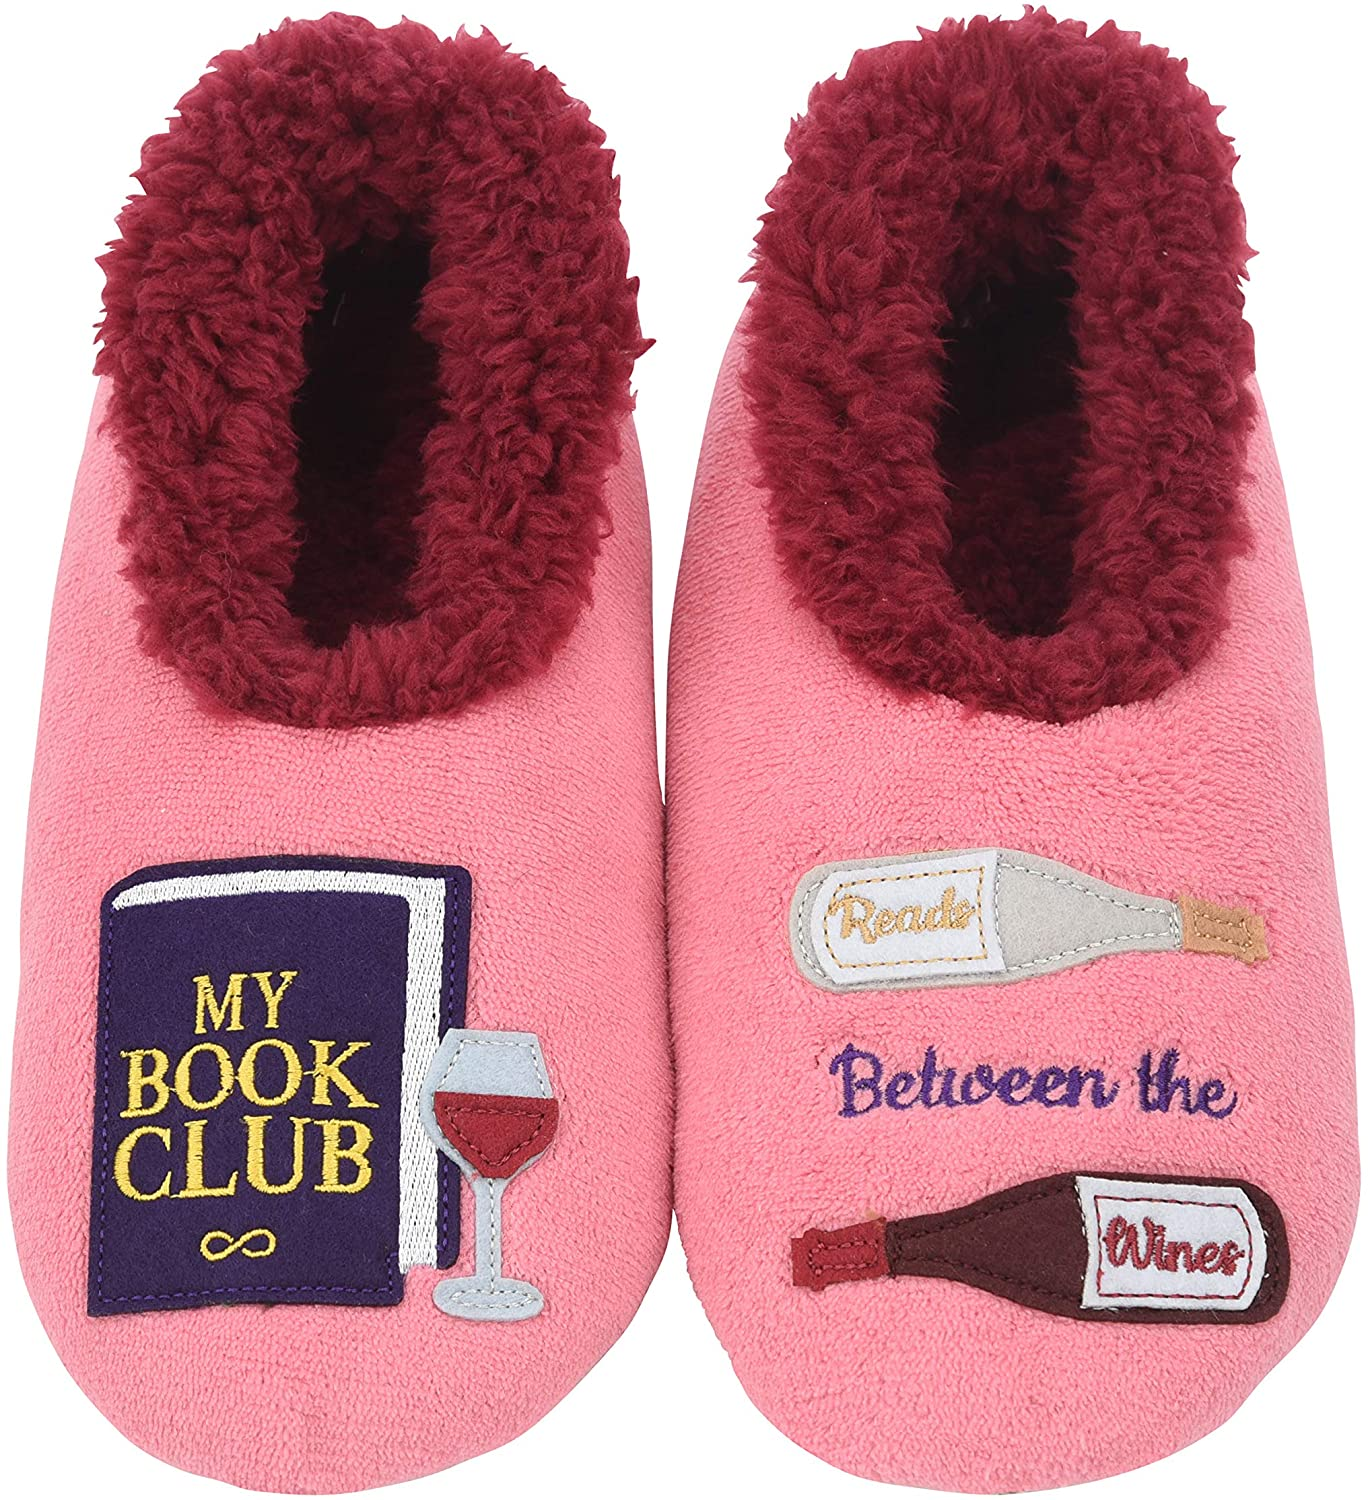 pink slipper socks with book club patches, best gifts for book lovers